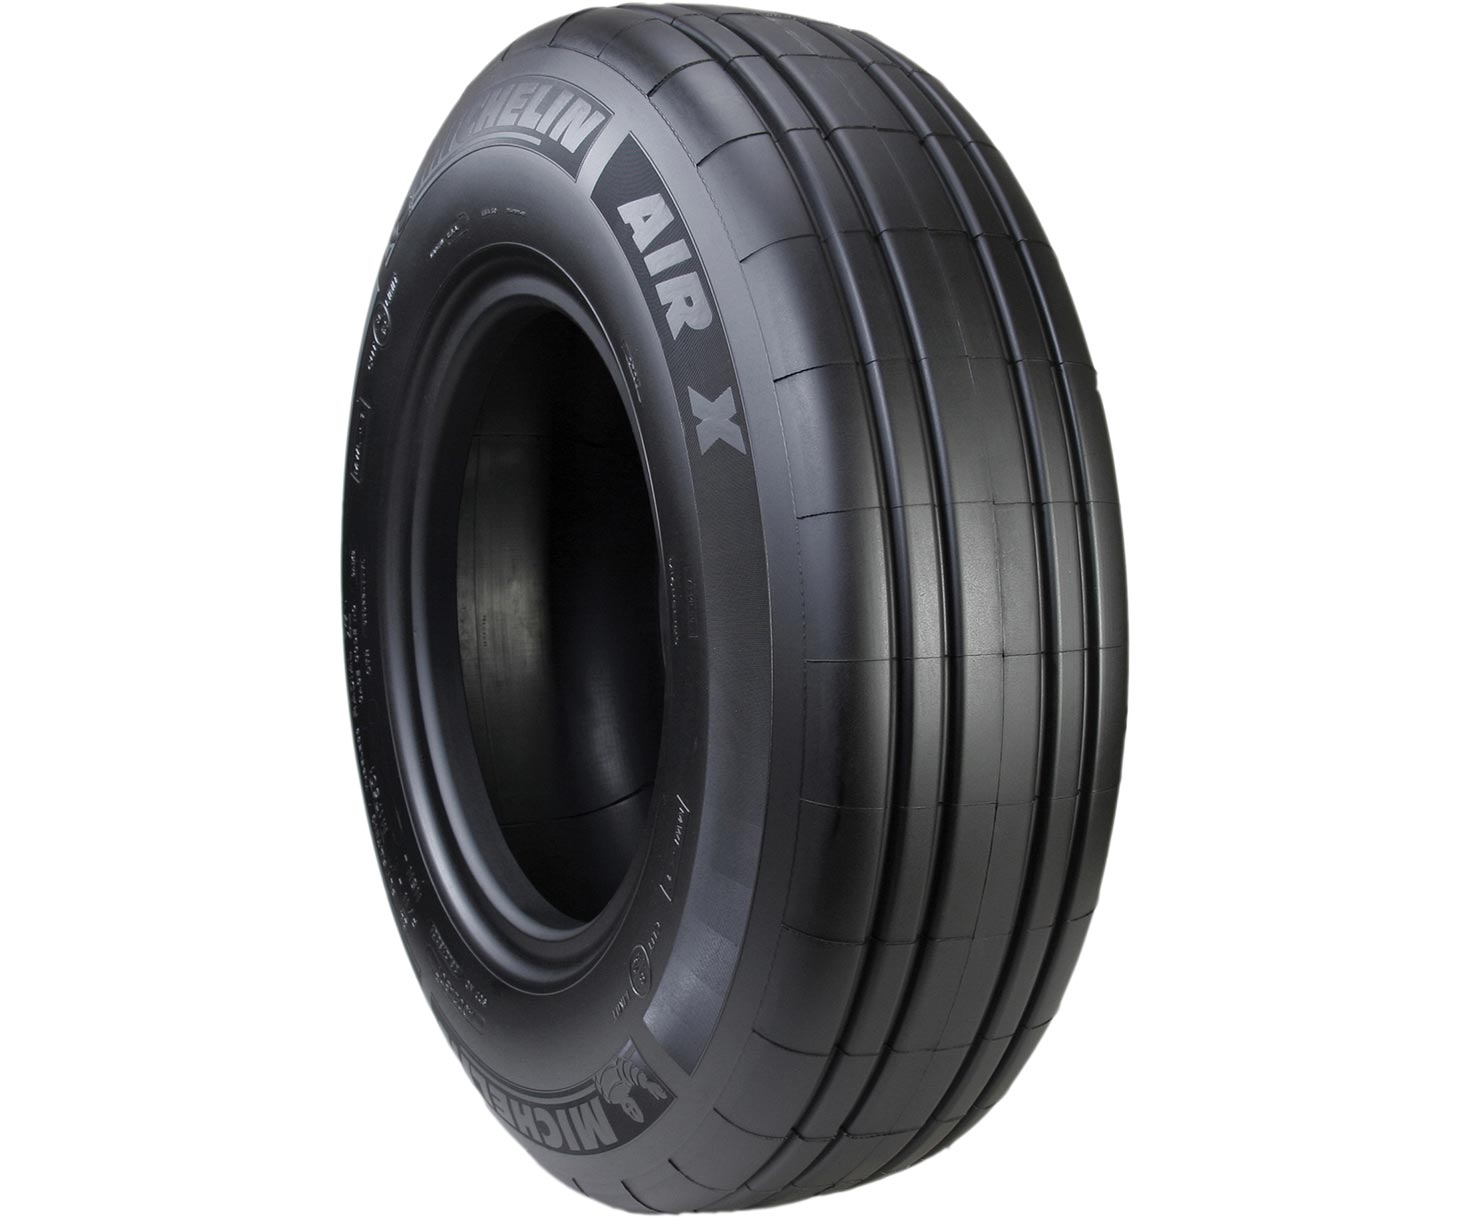 Michelin 076-446-1 Air 29x11.0-10-10-Ply 160 mph Tubeless Aircraft ...